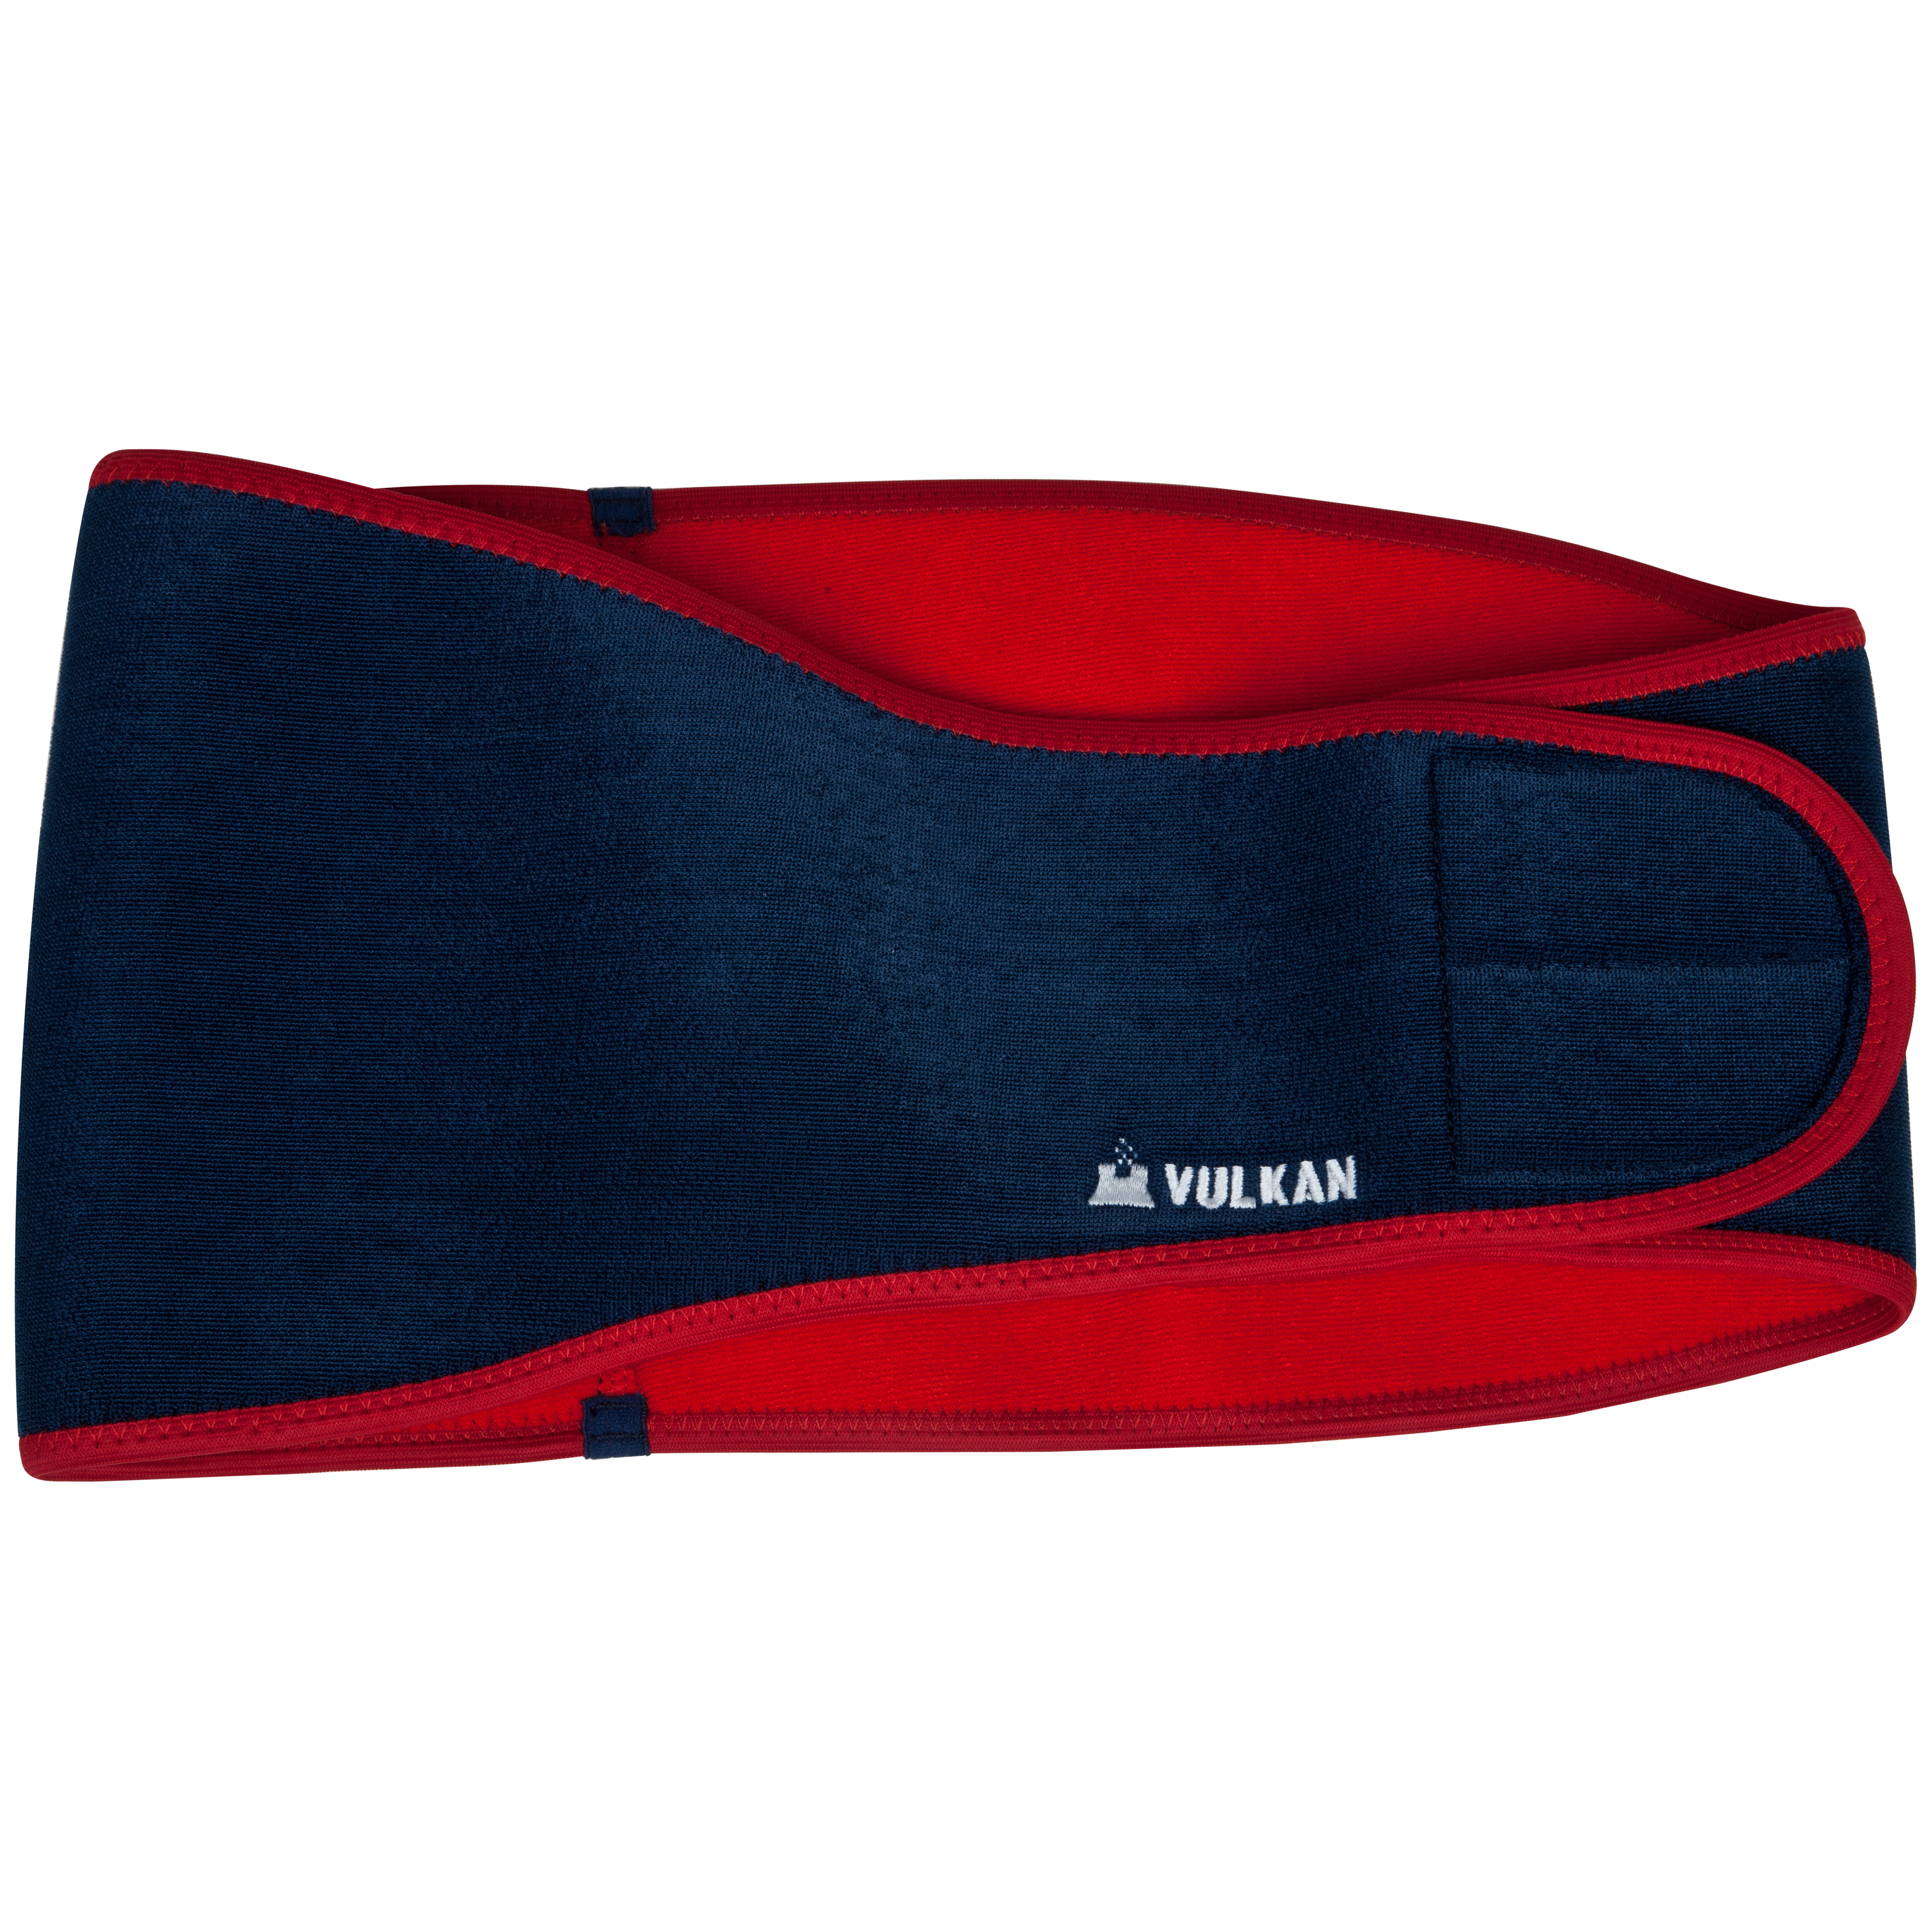 Vulkan Back Support One Size Reinforced - Blue/Red